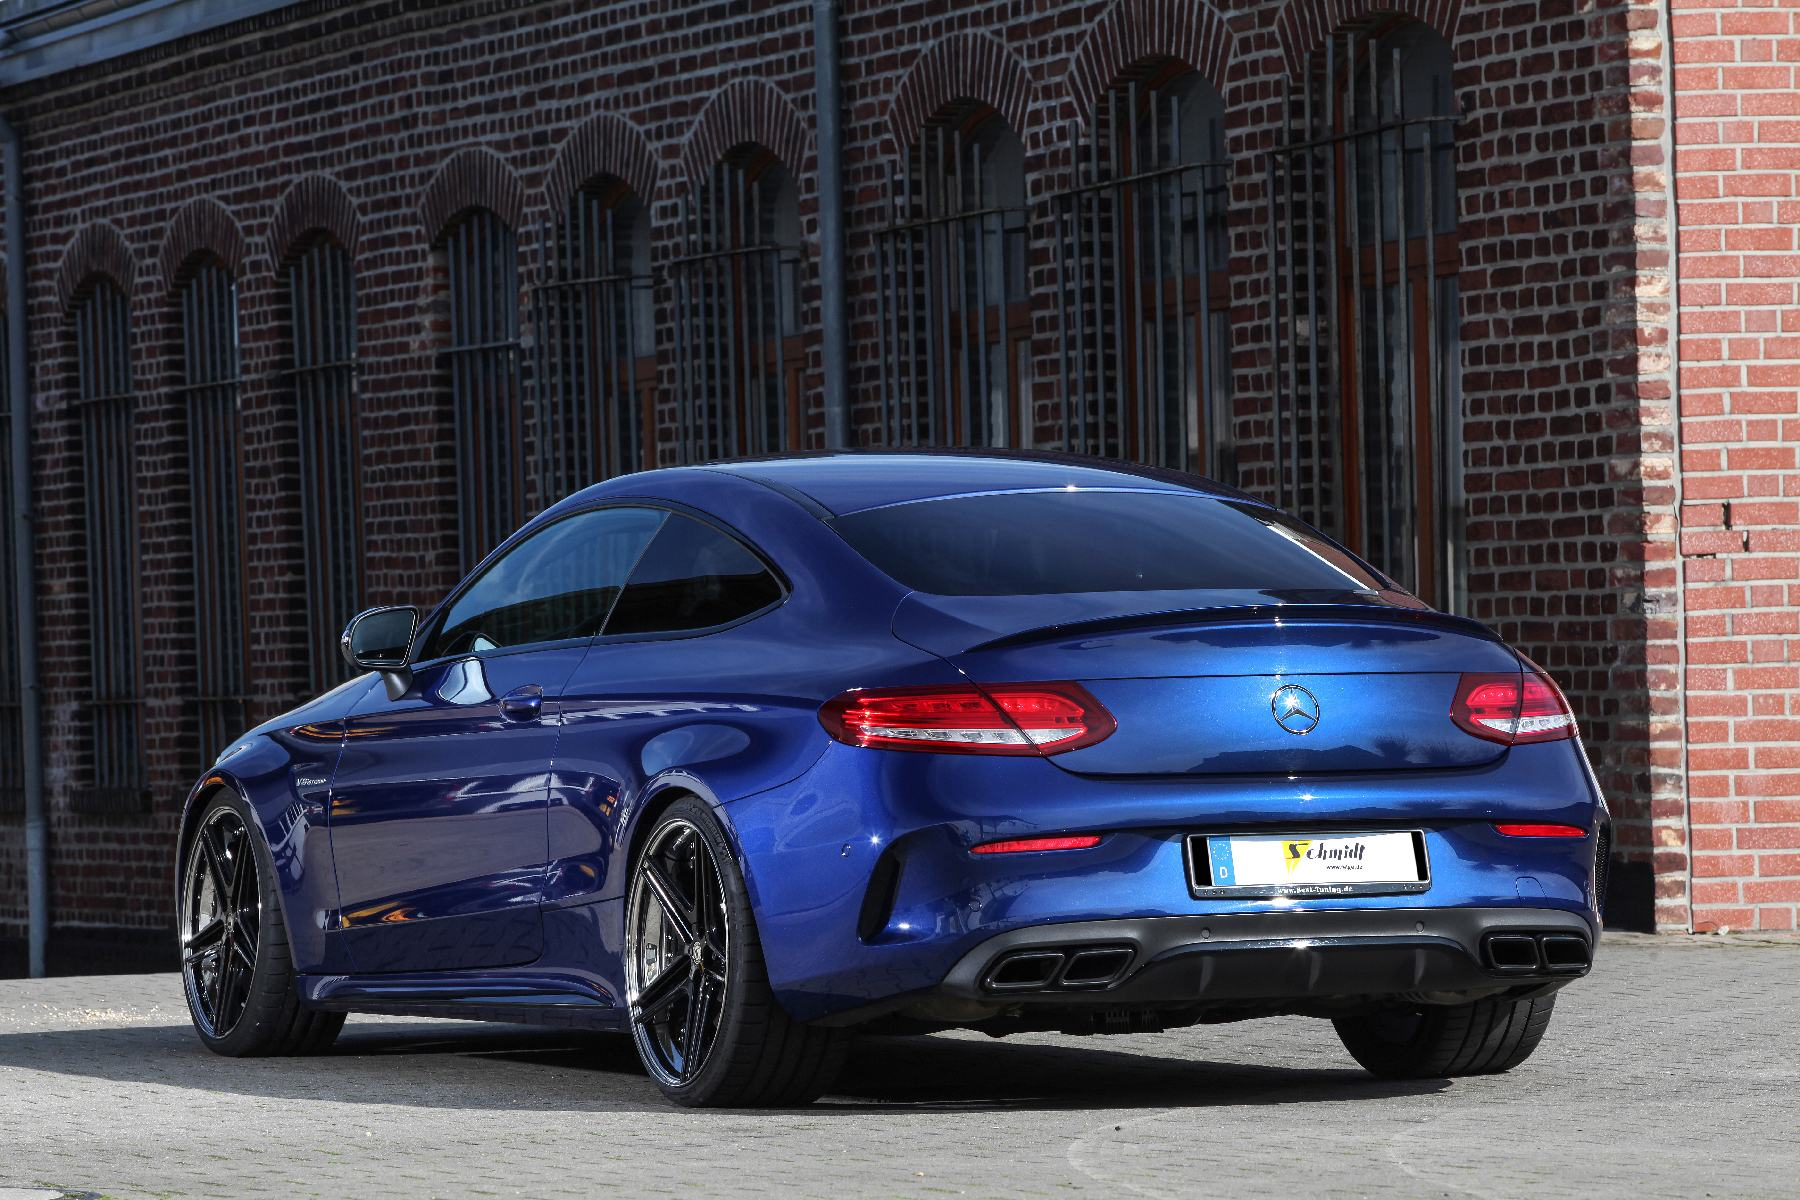 Mercedes c63 amg c klasse coupe by best cars and bikes for Mercedes benz best car